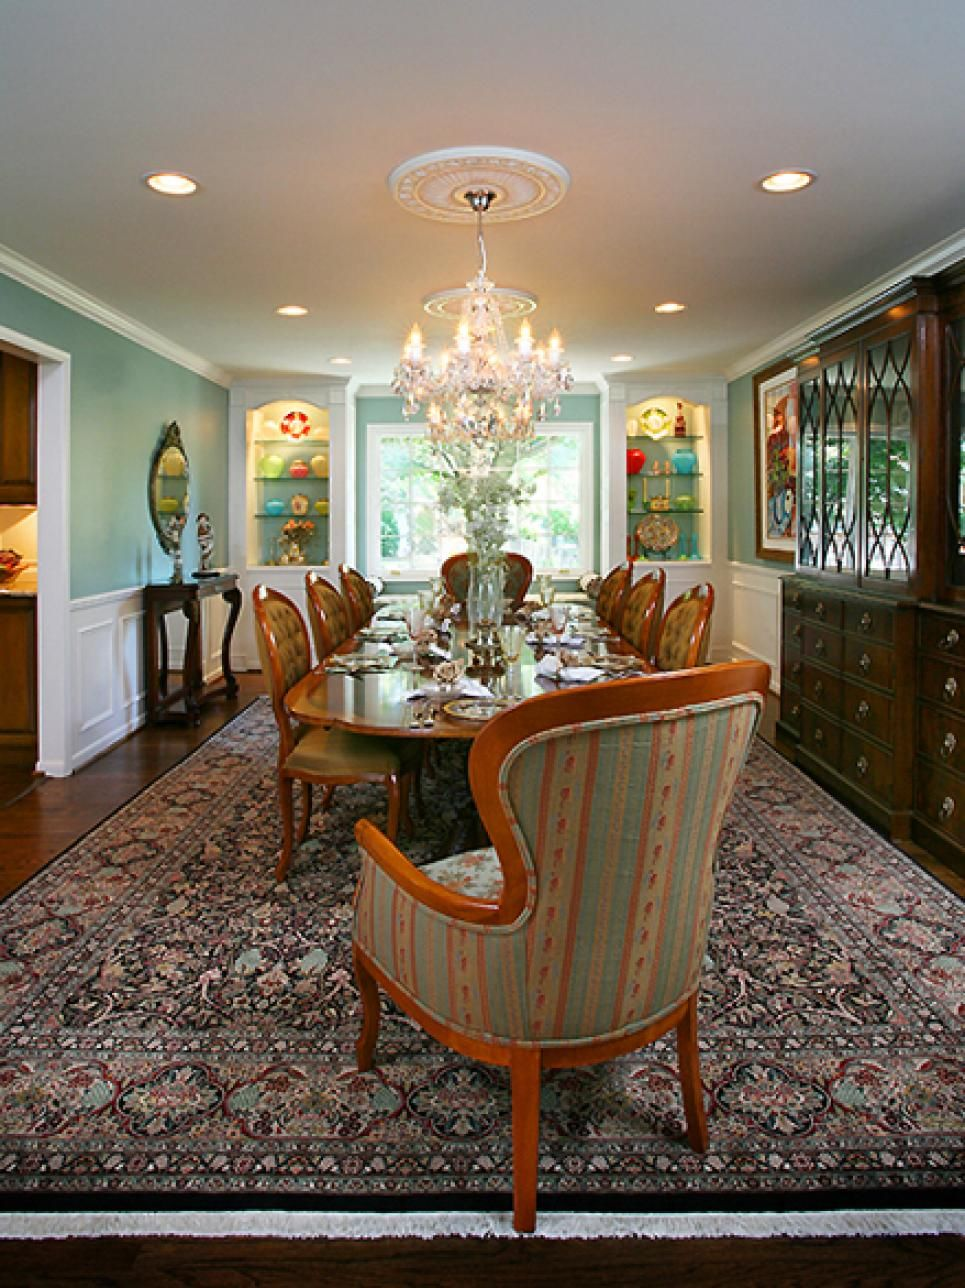 Nothing Says Timeless Elegance Quite Like A Room That Mirrors Victorian Style And Charm Take Step Back In Time With Our Favorite Inspirational